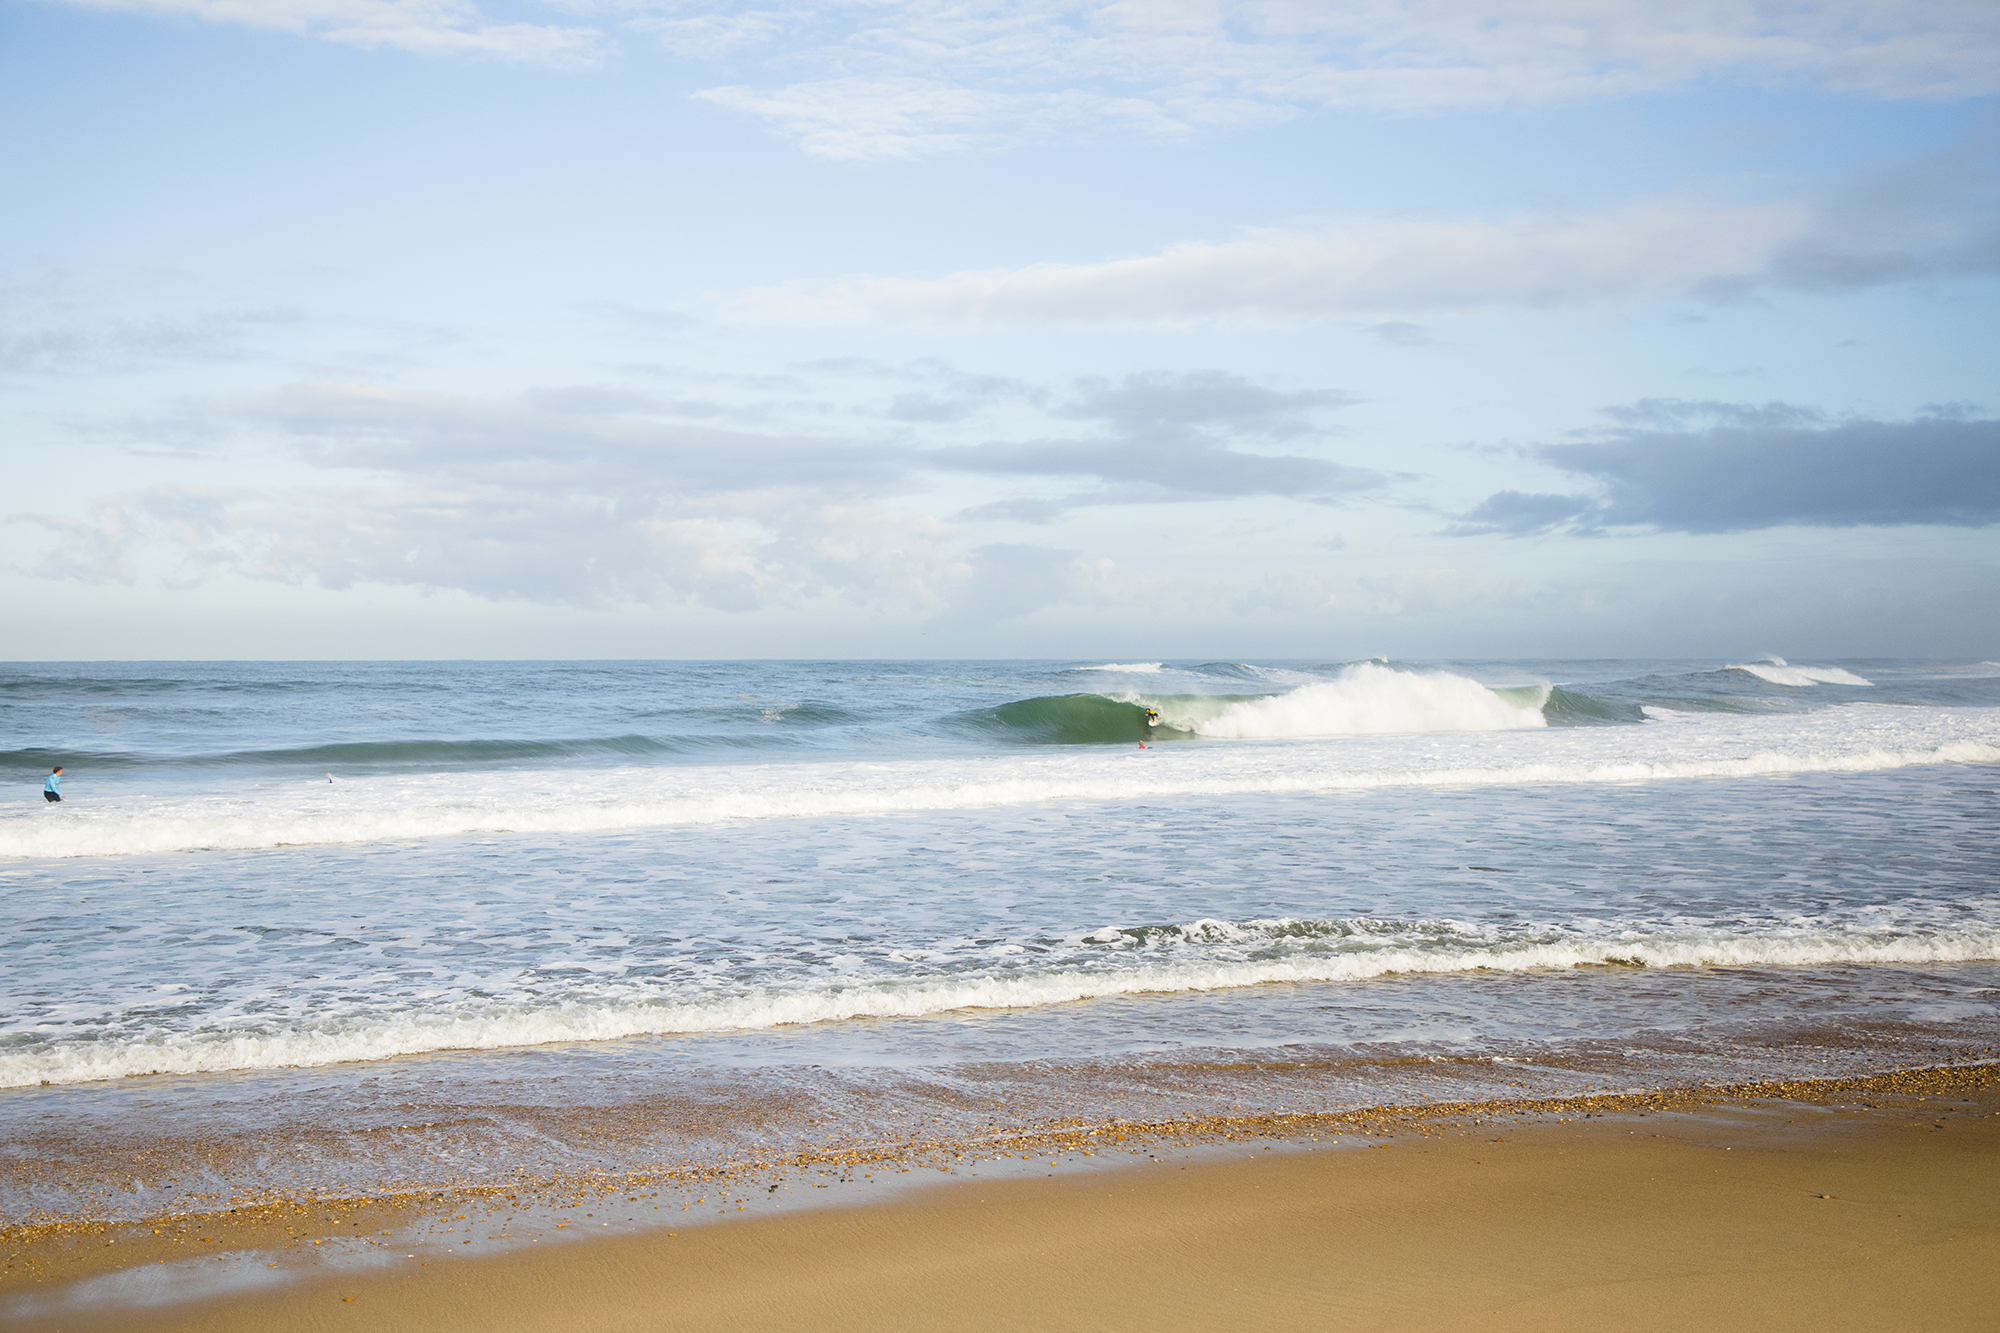 edouard-delpero-french-surfing-championships-2017-hossegor-we-creative-antoine-justes